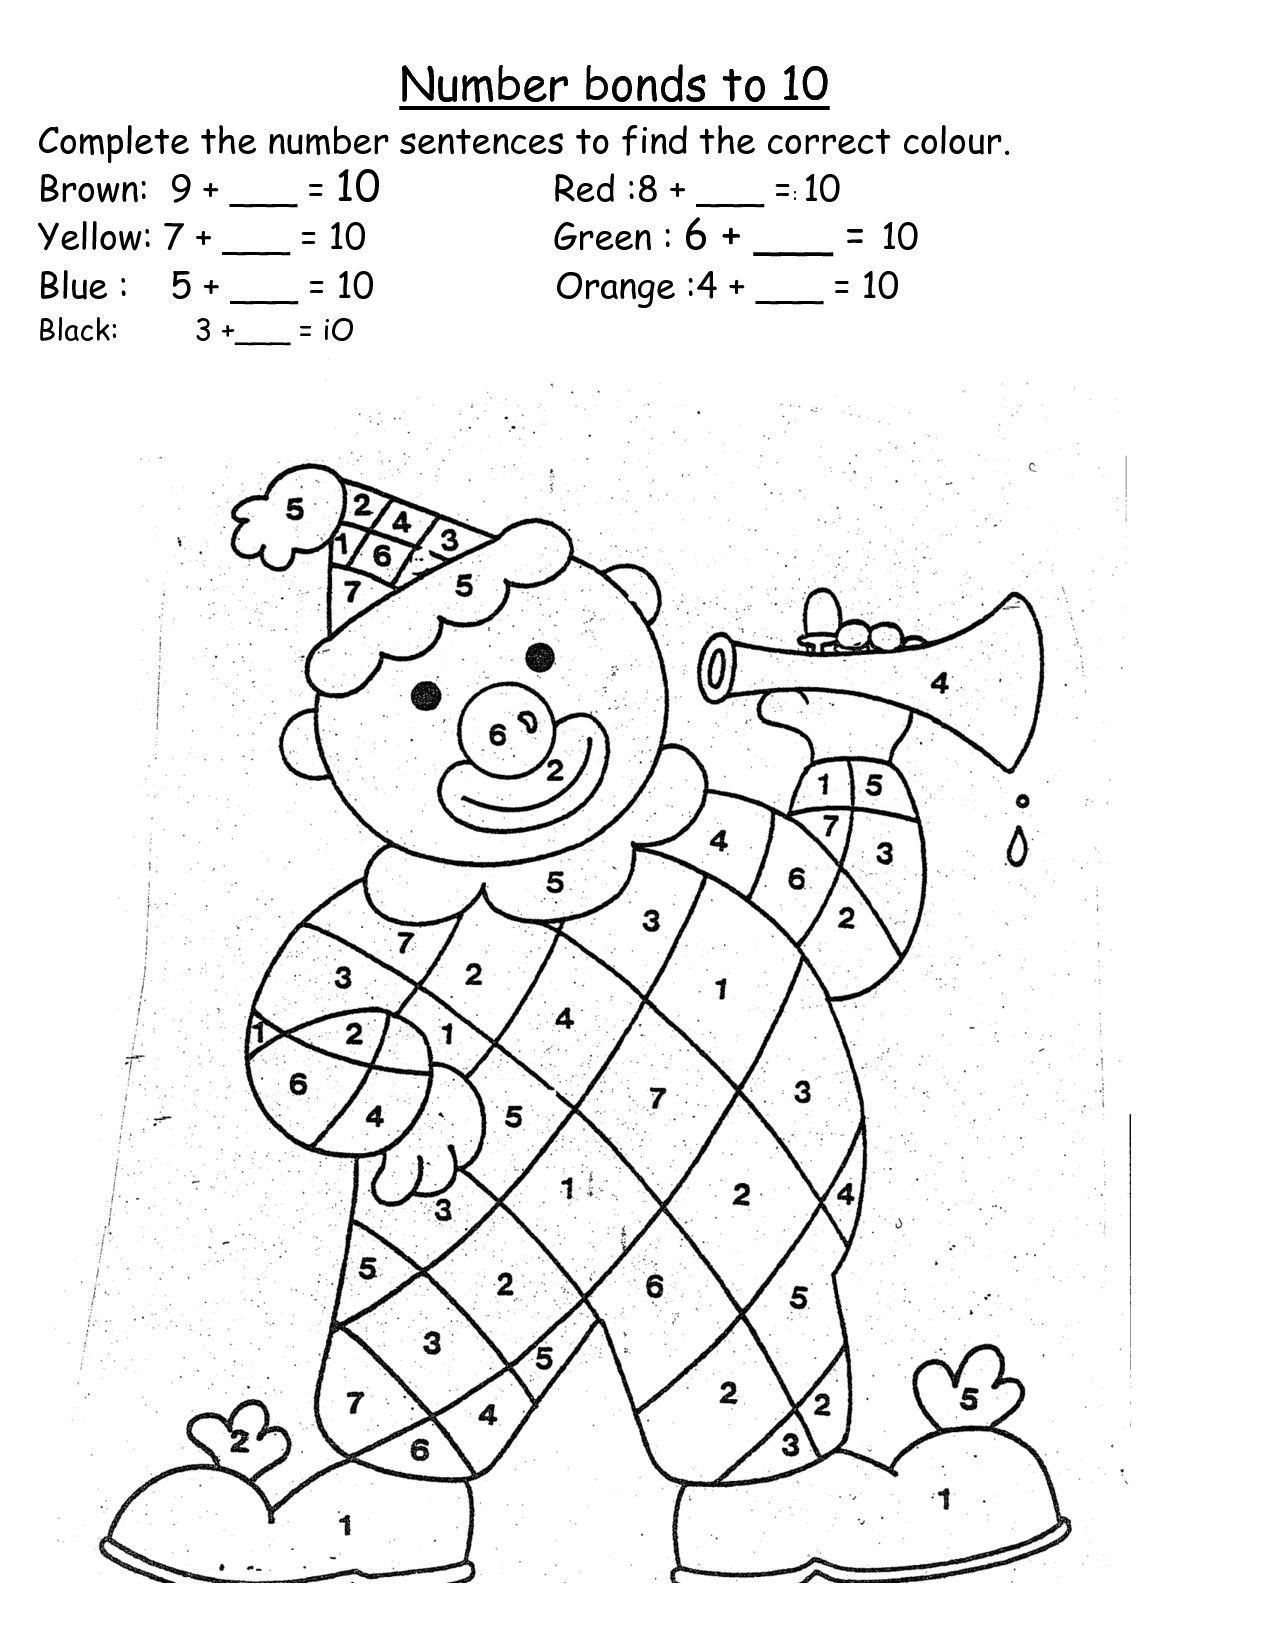 Number Bond Worksheets 1st Grade 4 Free Math Worksheets First Grade 1 Addition Number Bonds